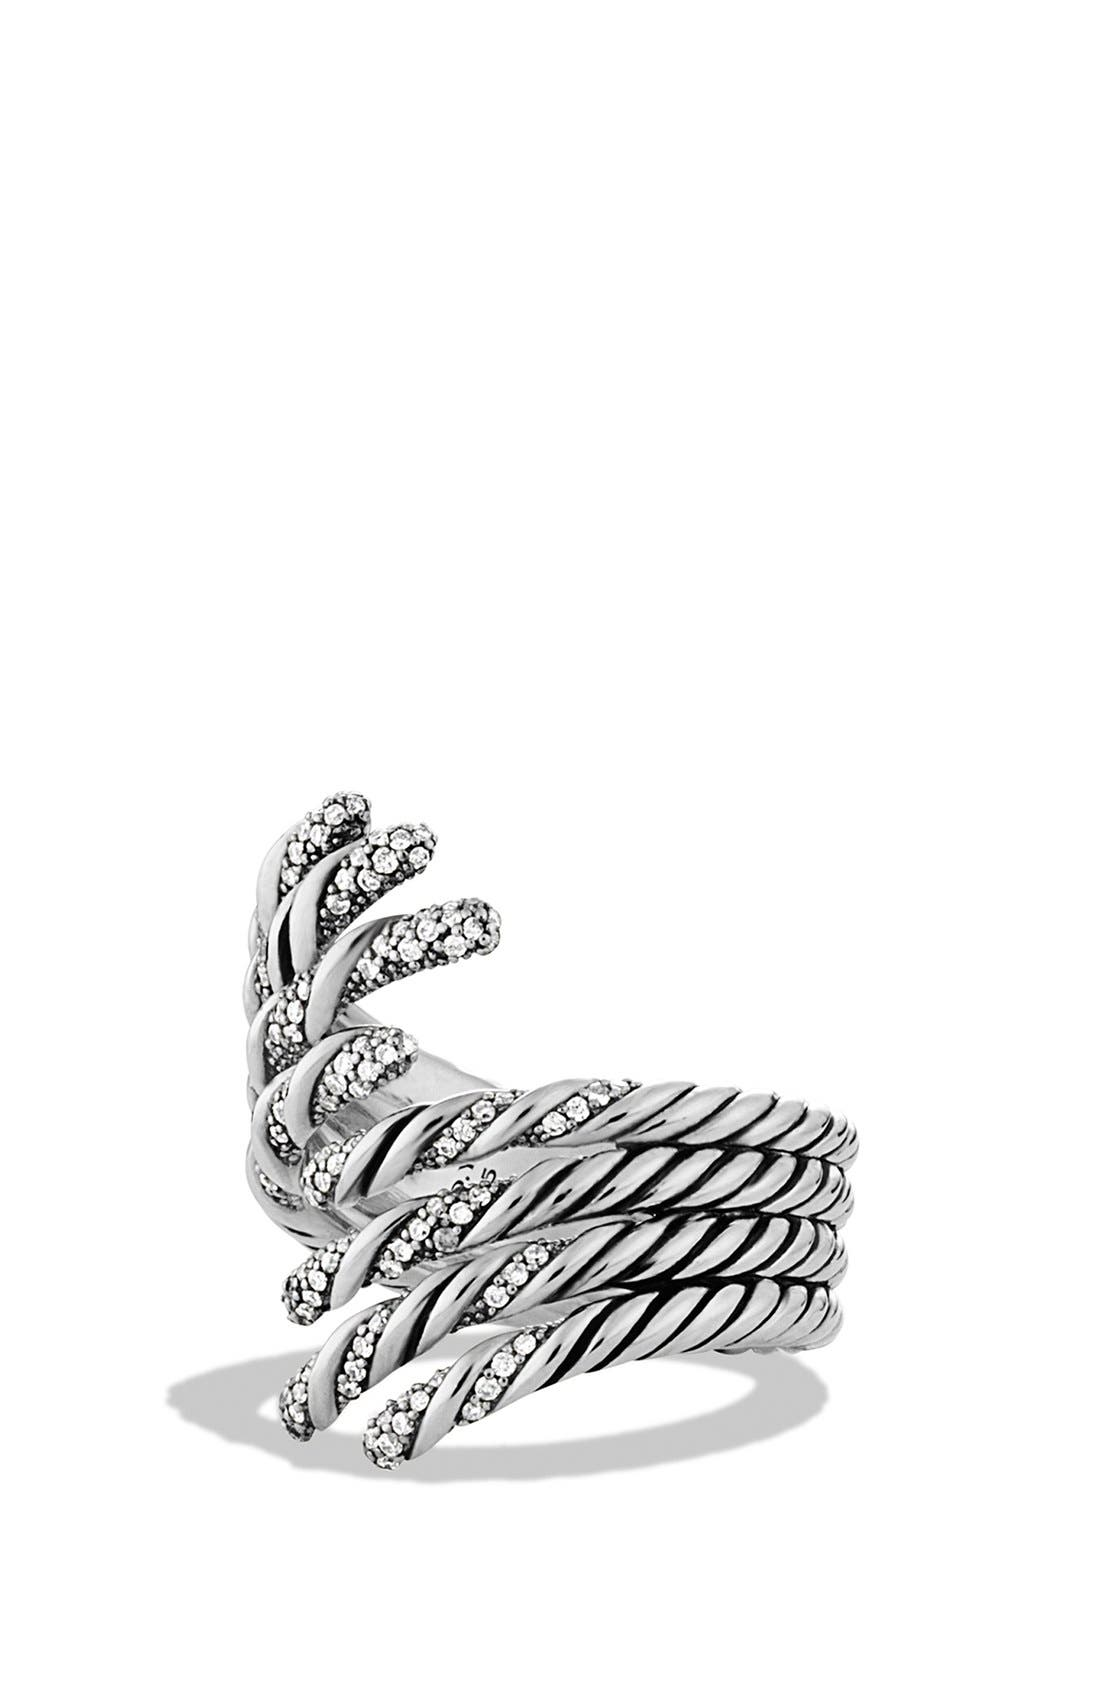 'Willow' Open Four-Row Ring with Diamonds,                             Main thumbnail 1, color,                             040